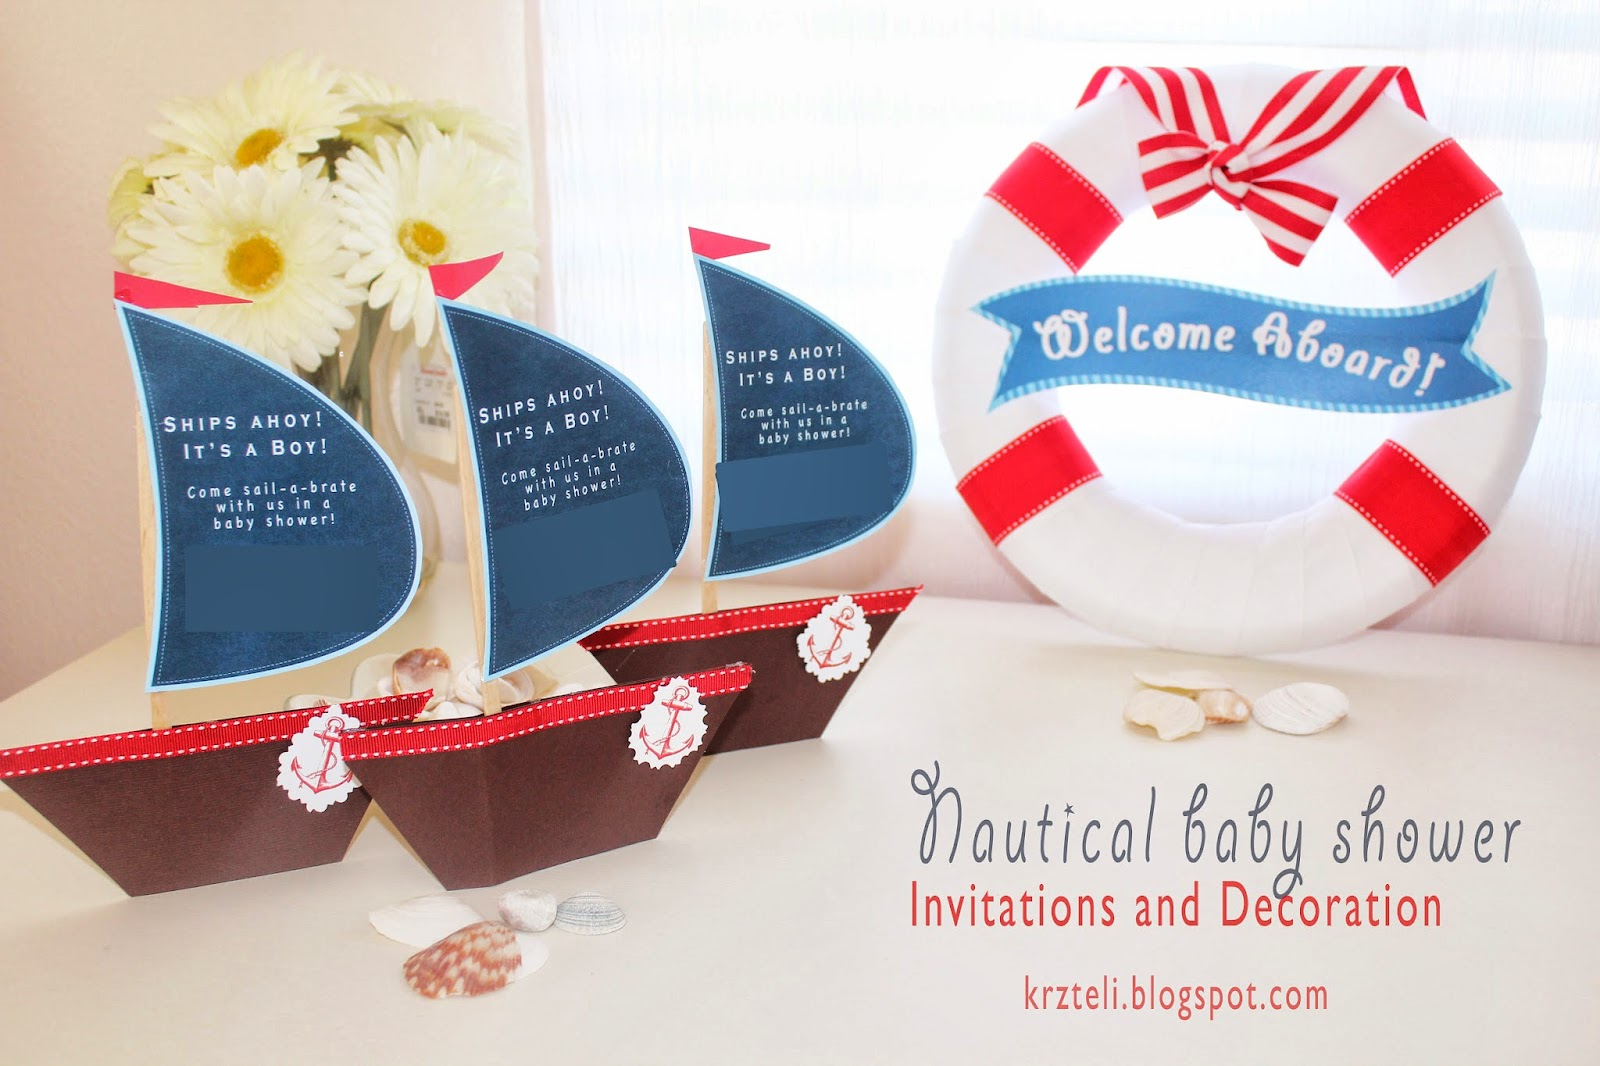 Pink Confessions **!: DIY Nautical Baby Shower Invitation and Decoration